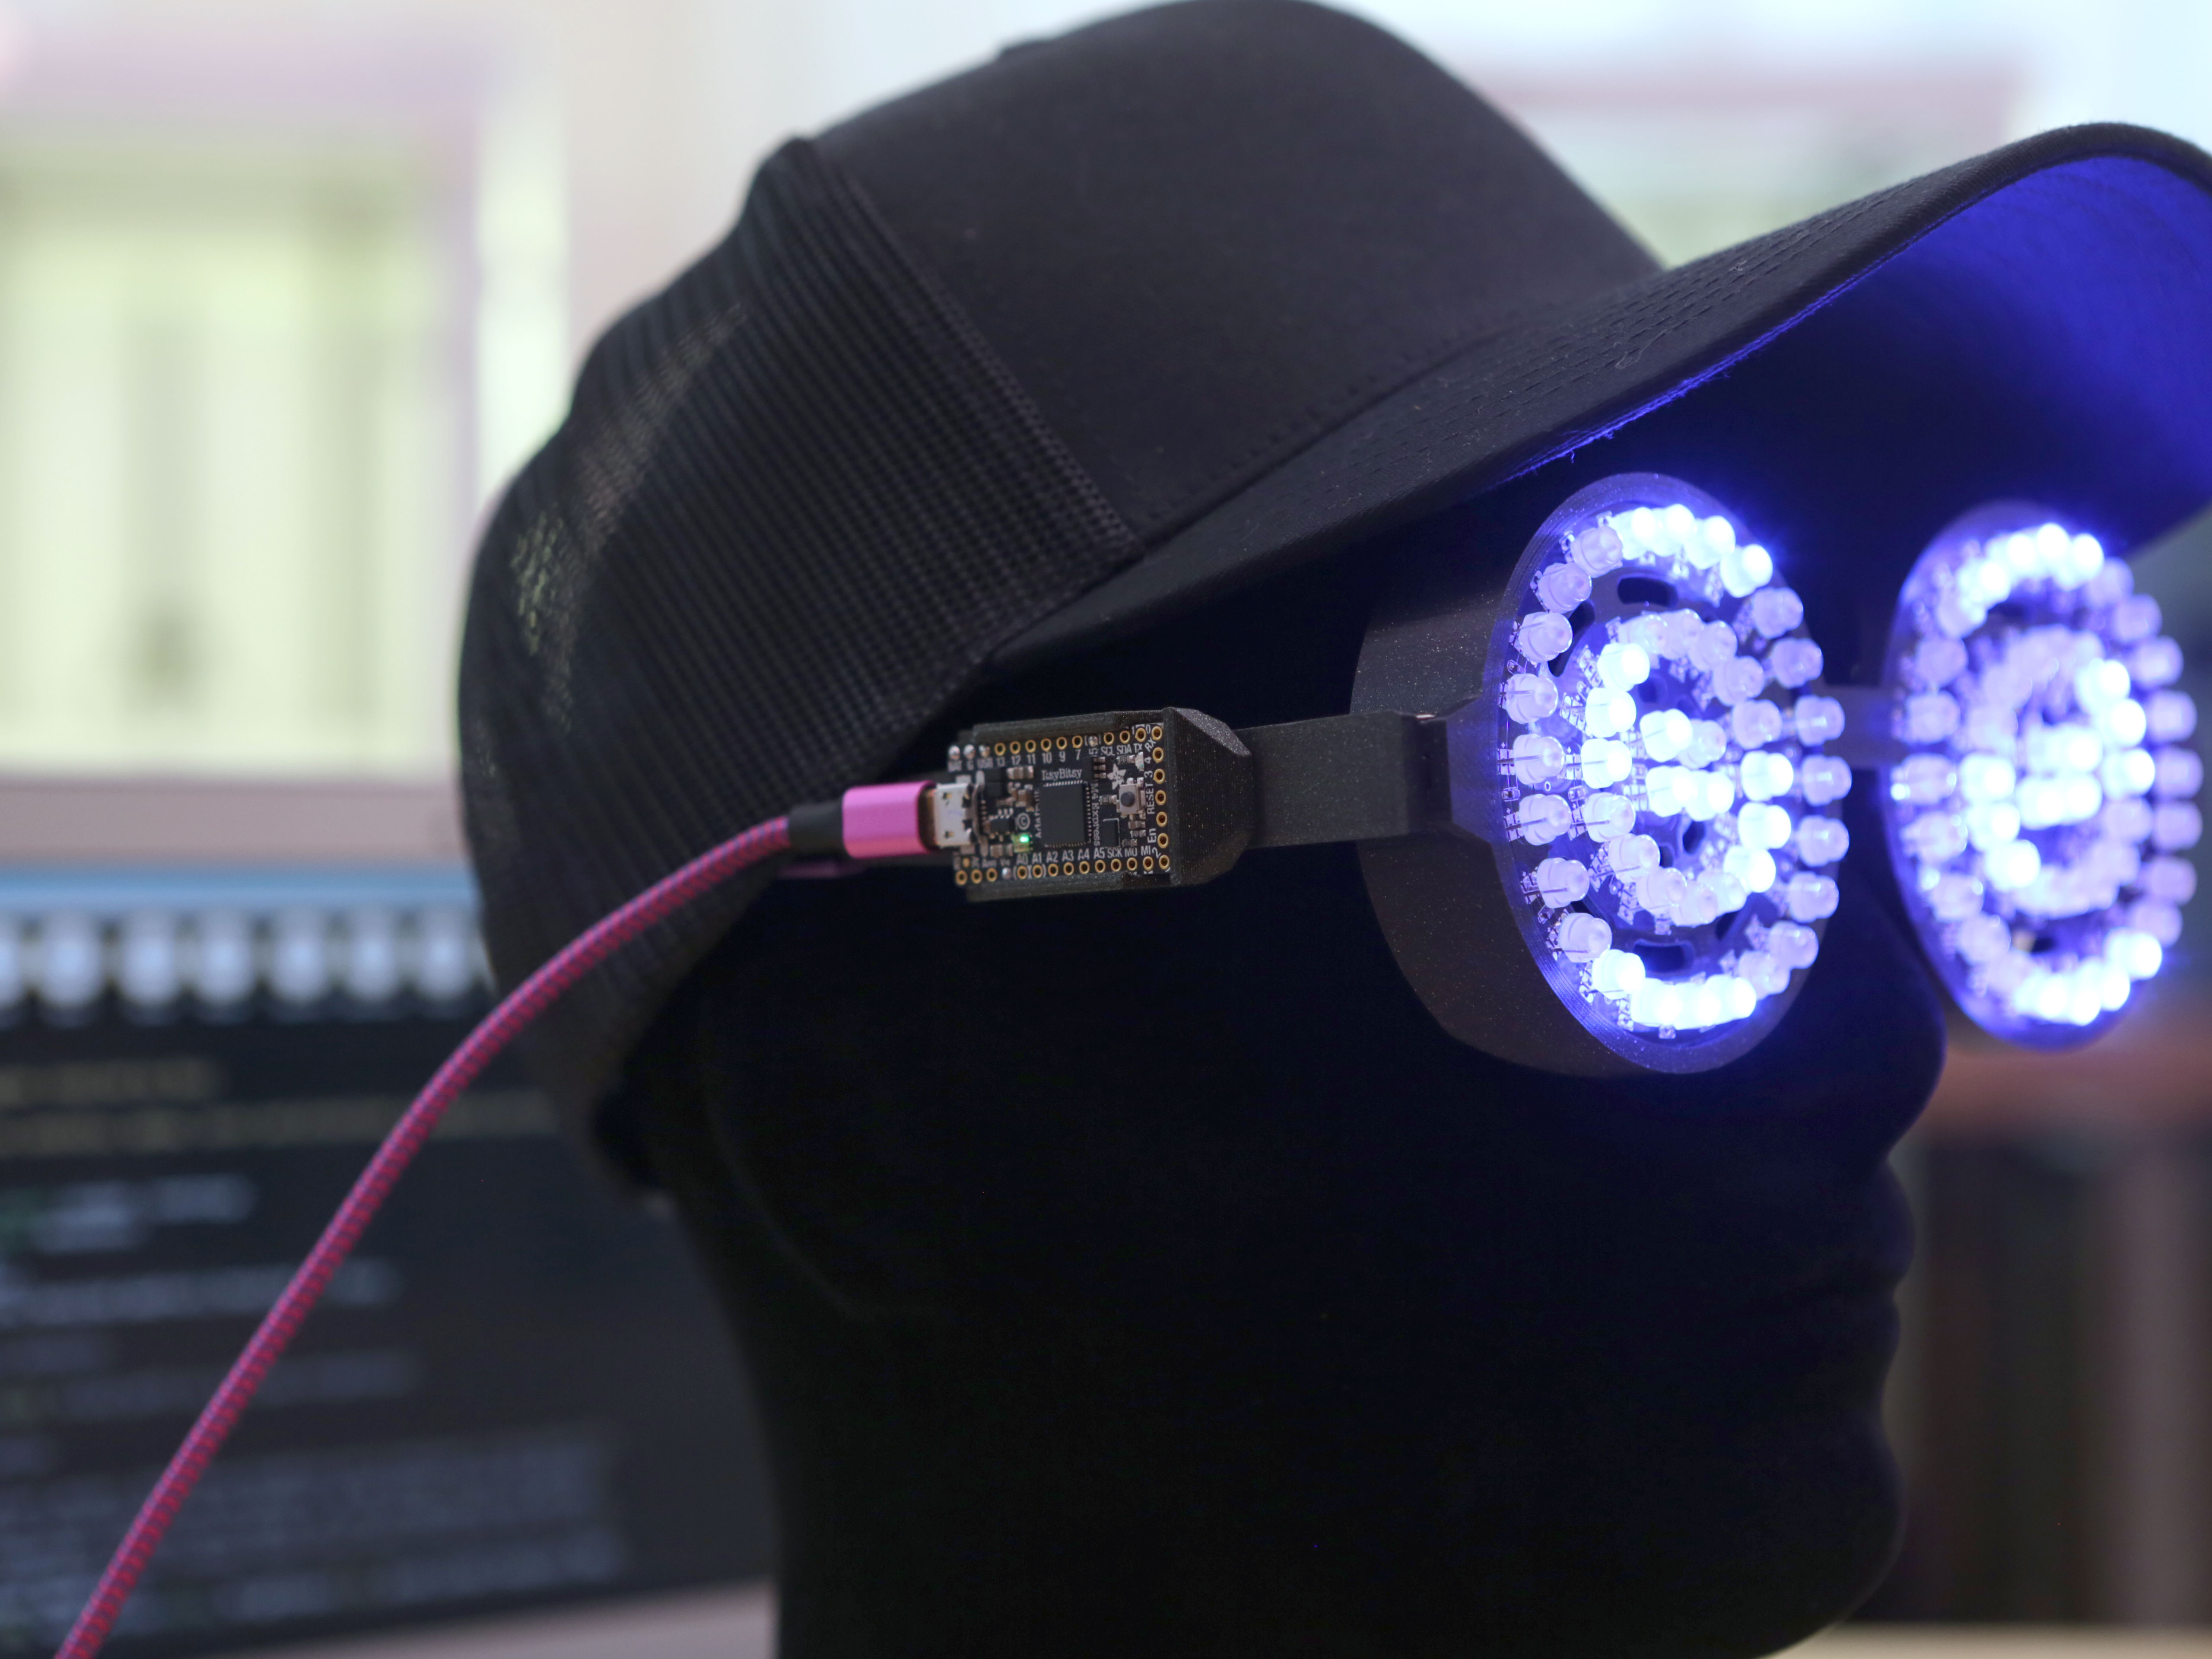 led_pixels_itsy-code-glasses.jpg